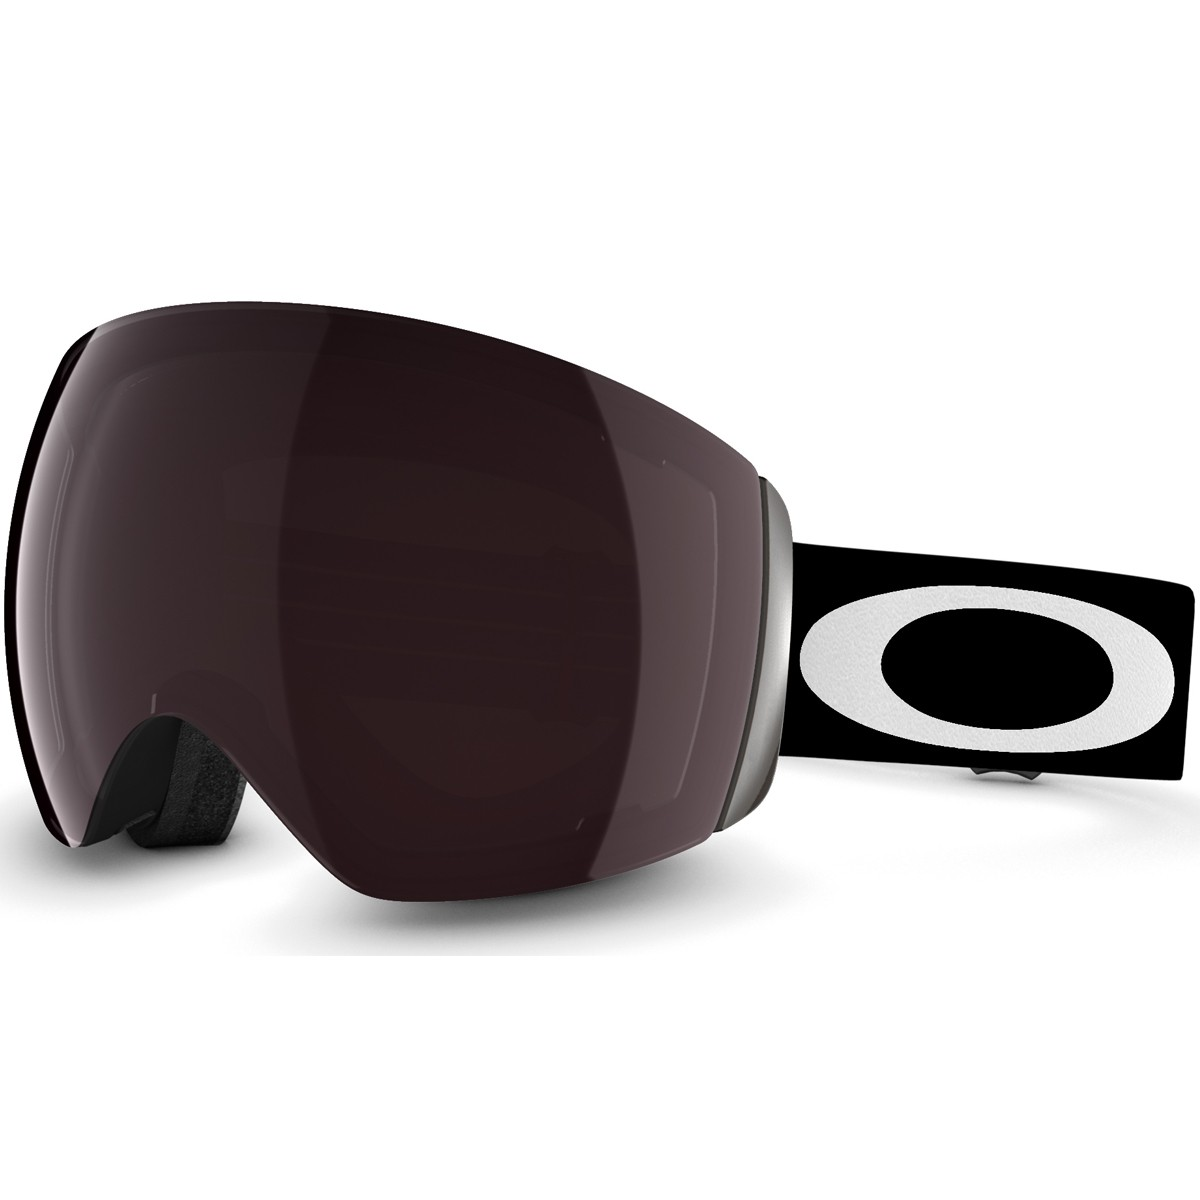 oakleys snowboarding goggles  Oakleys Snowboarding Goggles - Ficts